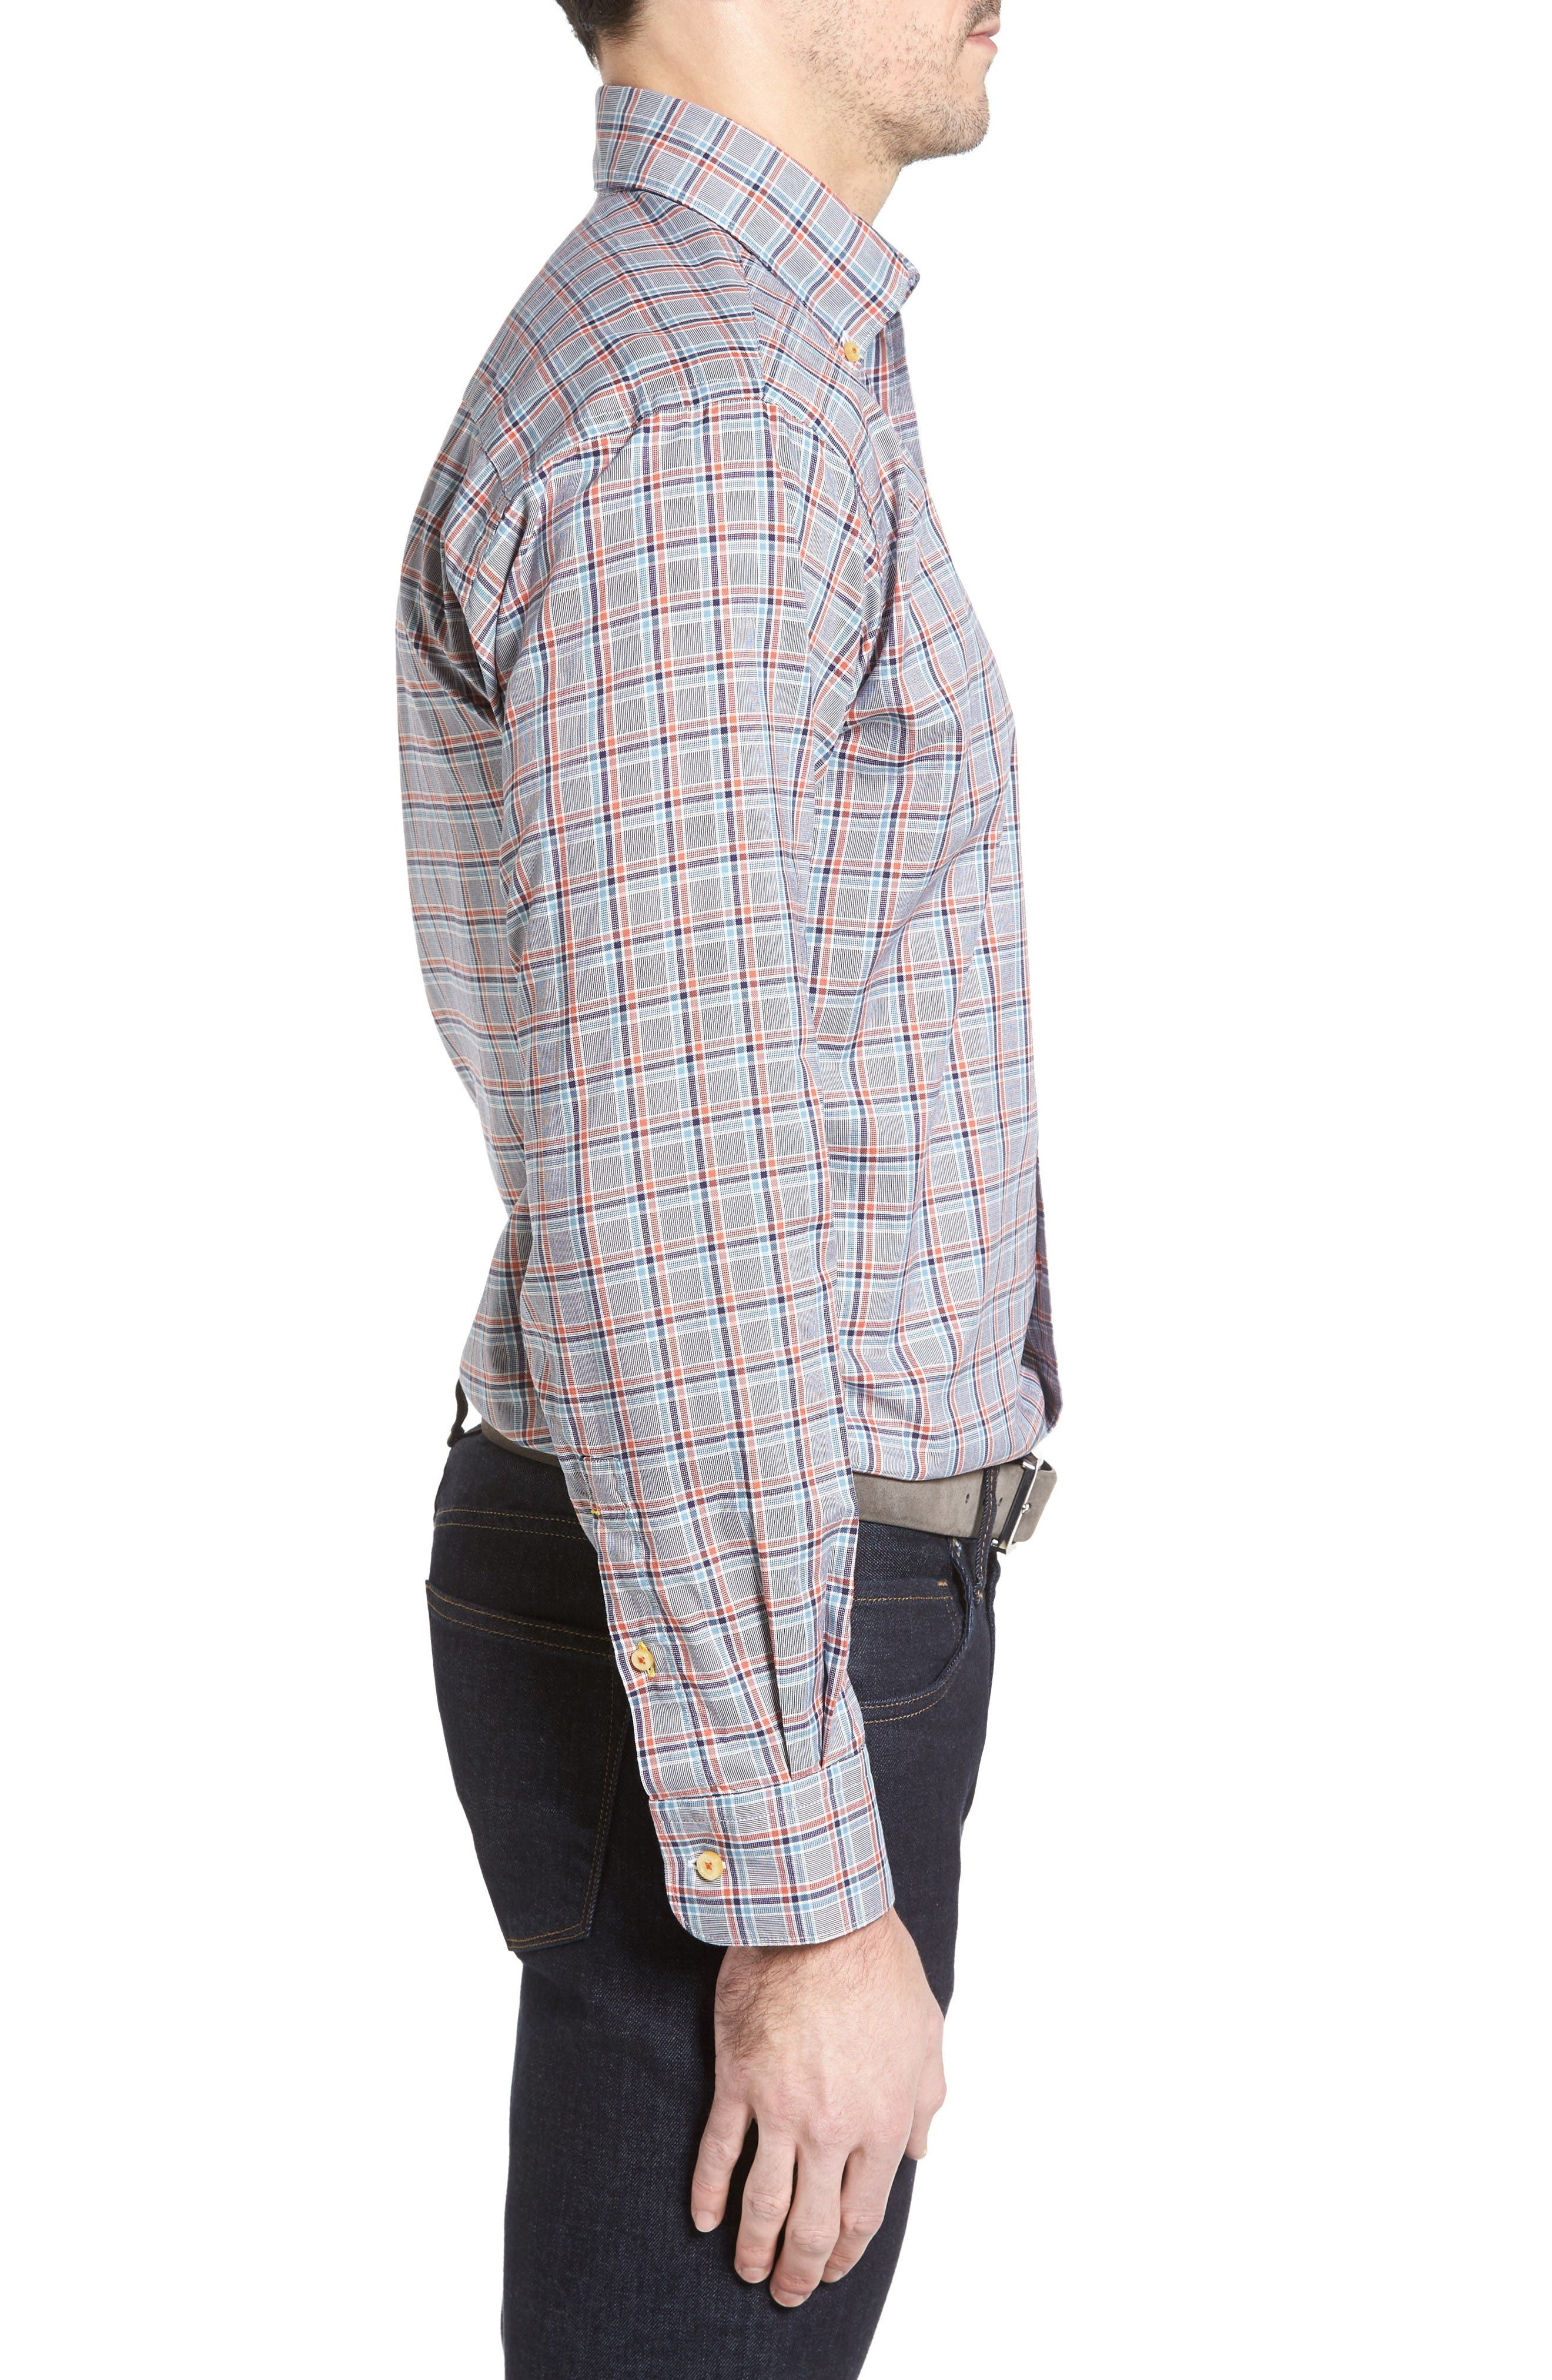 Anderson Classic Fit Plaid Oxford Sport Shirt,                             Alternate thumbnail 3, color,                             Navy